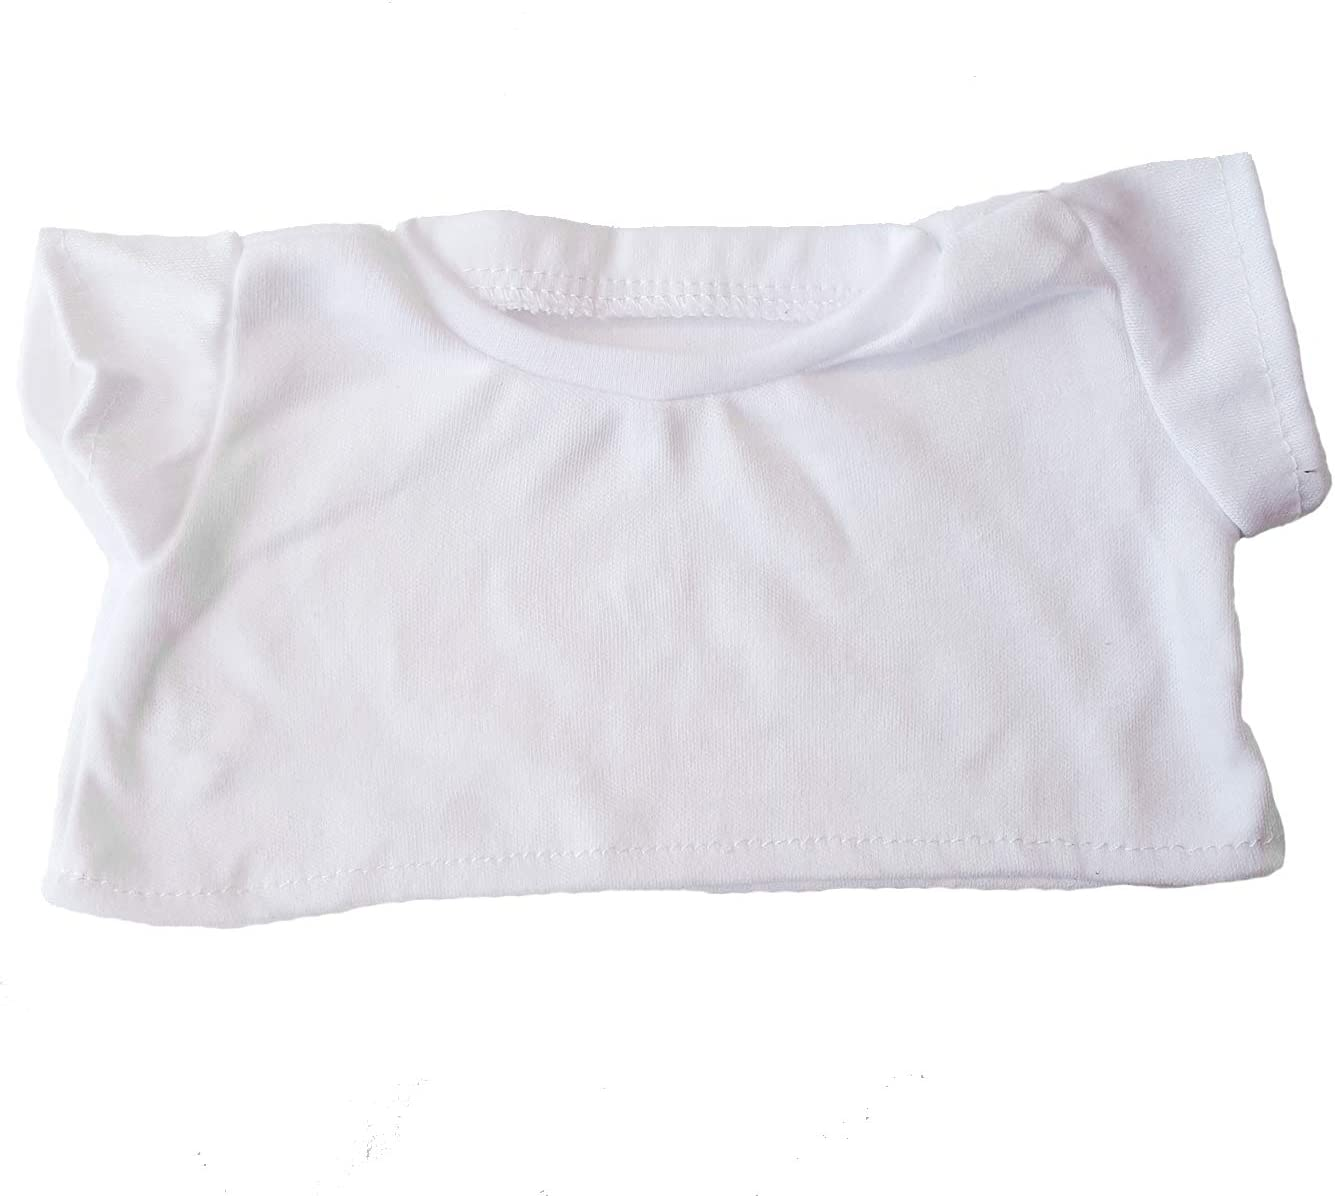 "B0037NVU2E White Basic Tee Shirt Teddy Bear Clothes Fit 14"" - 18\"" Build-a-bear, Vermont Teddy Bears, and Make Your Own Stuffed Animals 61Qeue5lFjL"